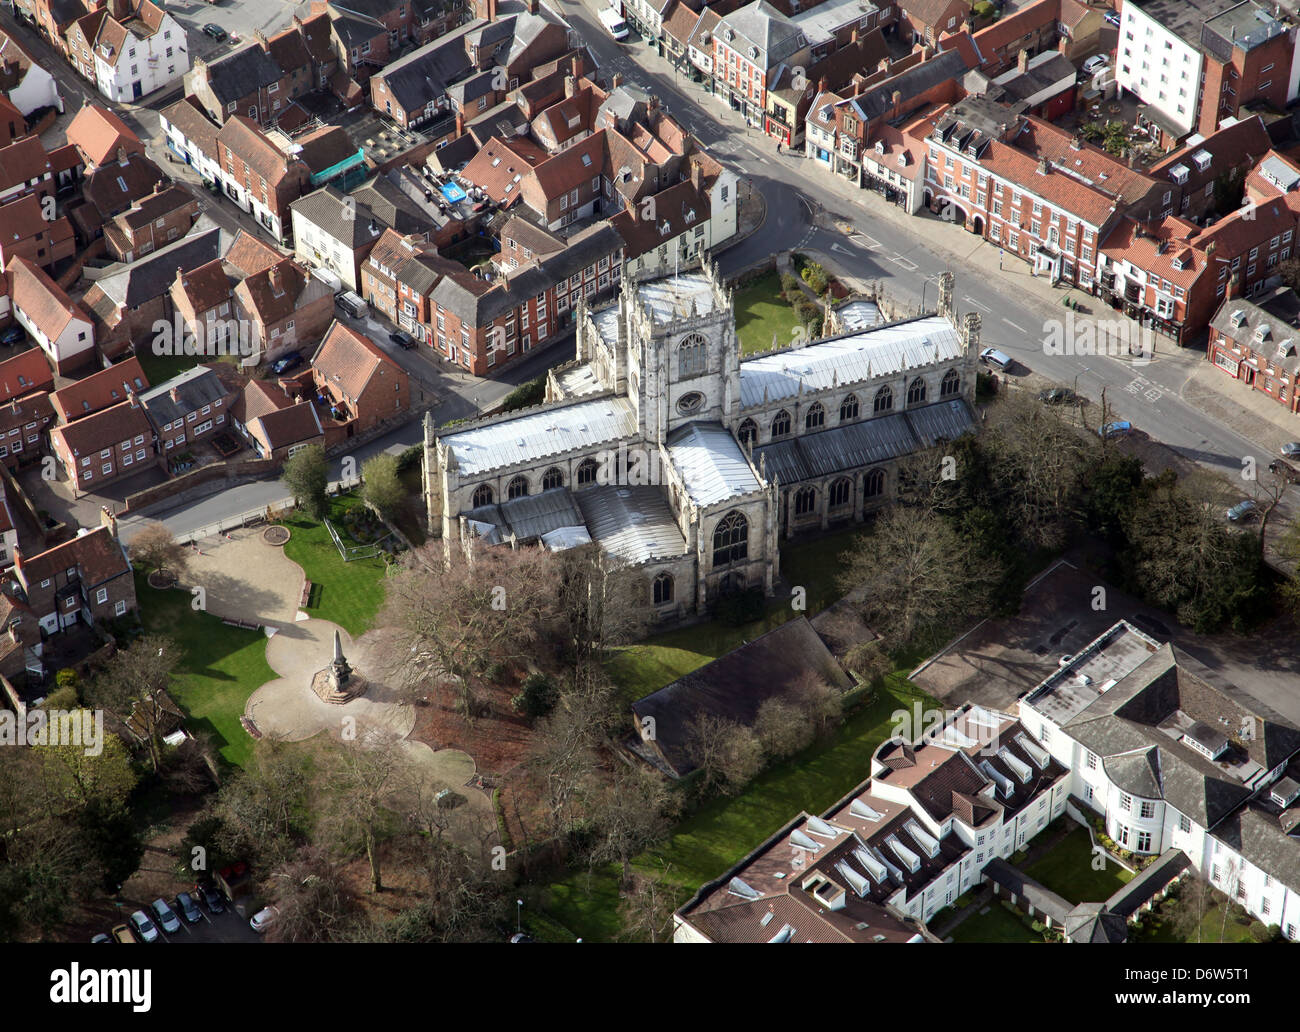 aerial view of St Marys Church in Beverley, East Yorkshire Stock Photo